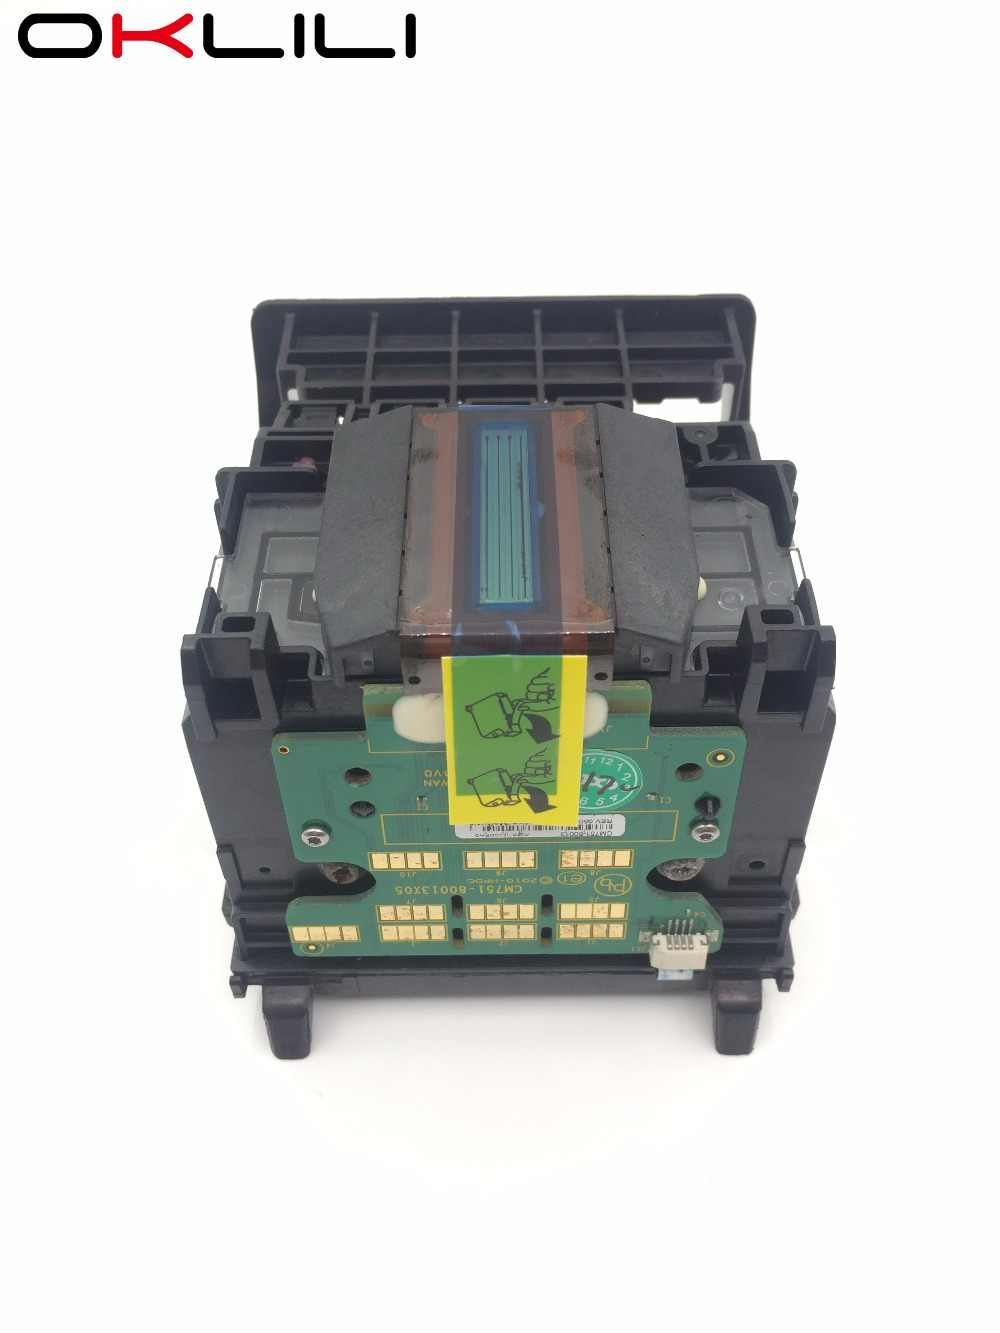 CM751-80013A 950 951 950XL 951XL Printhead Print head for HP Pro 8100 8600 Plus 8610 8620 8625 8630 8700 Pro 251DW 251 276 276DW